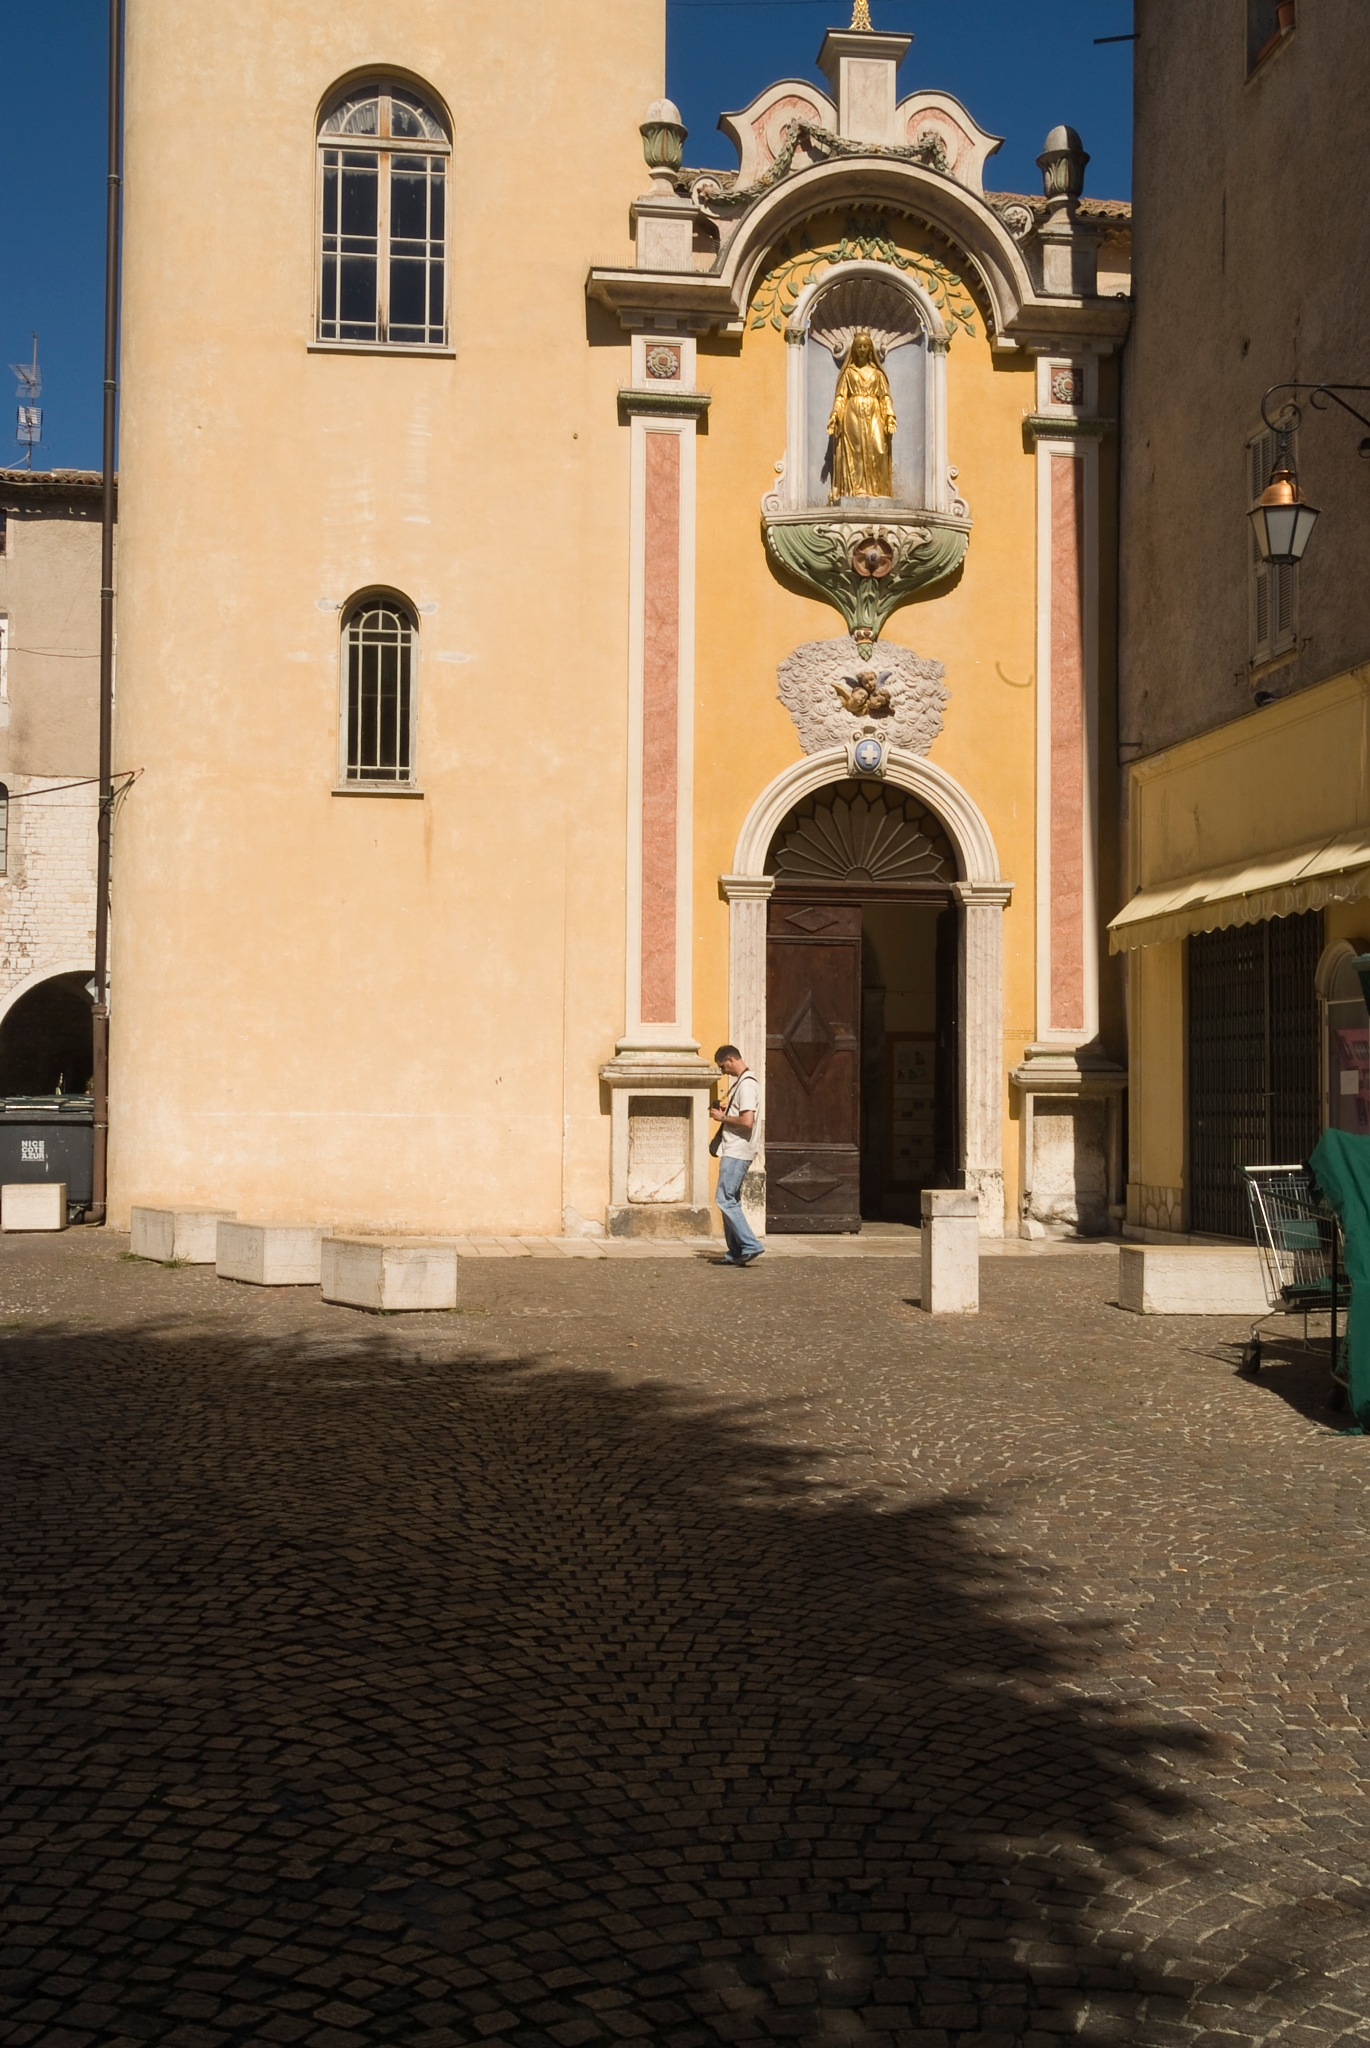 Church in Vence by Jim Hellier